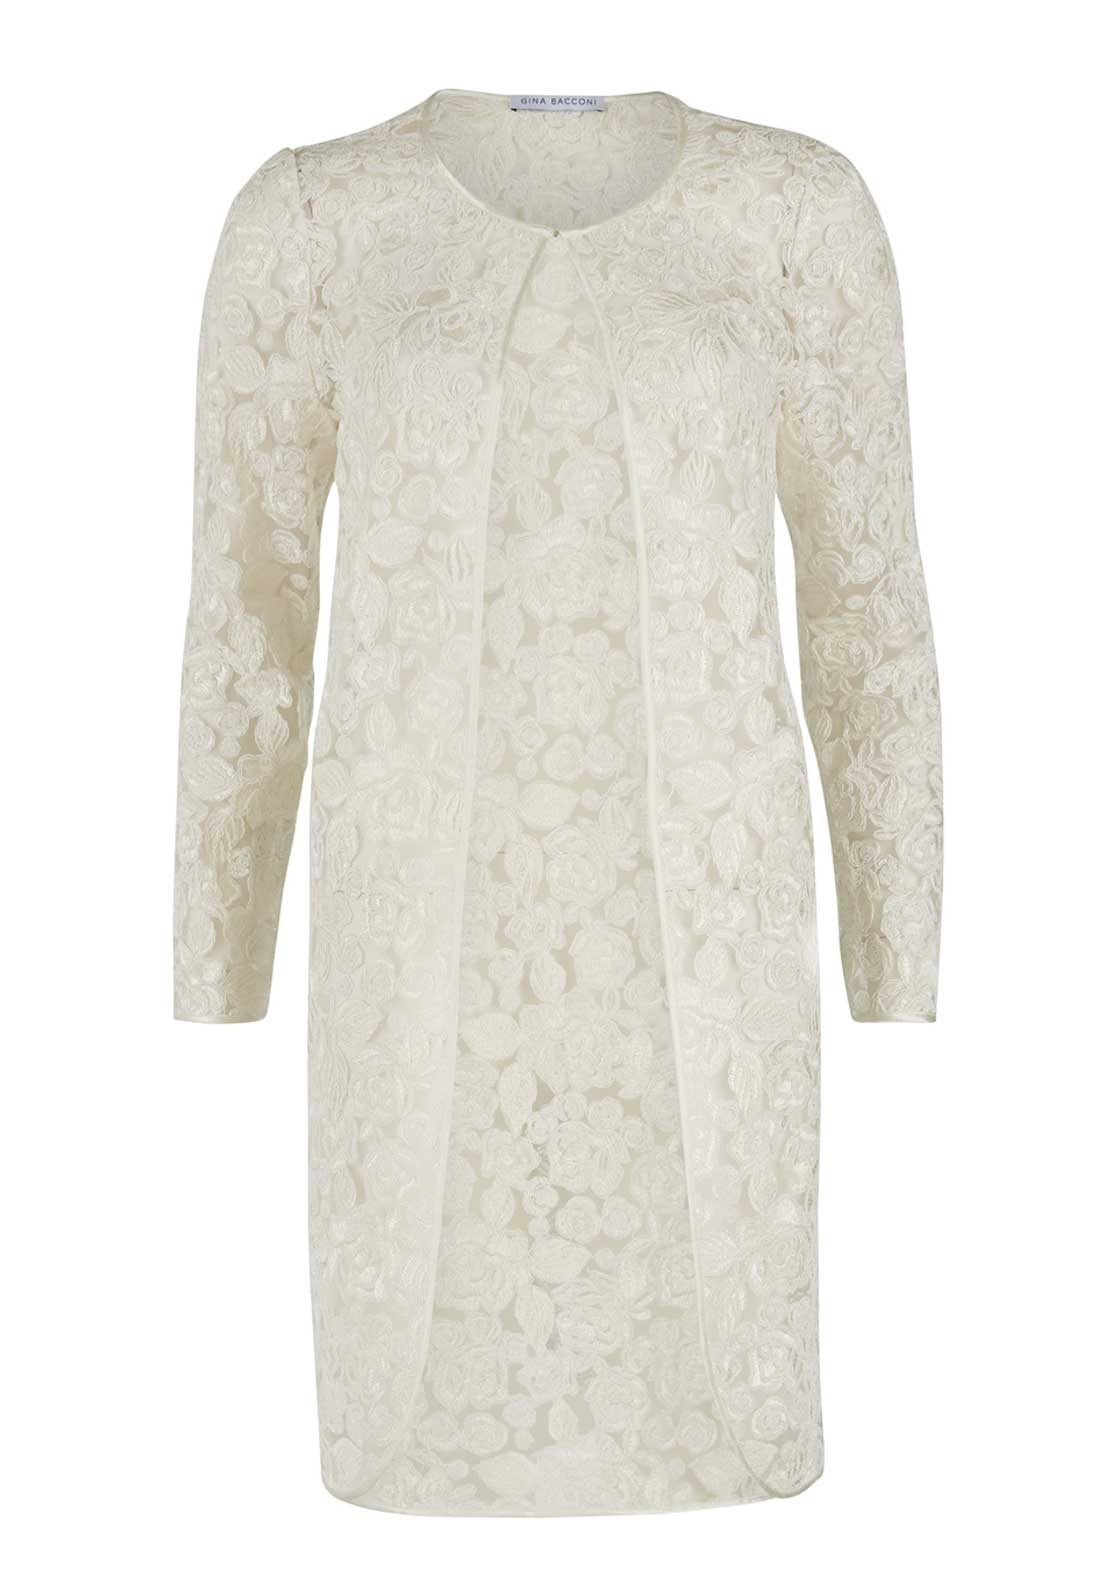 Gina BacconiI lace floral print coat